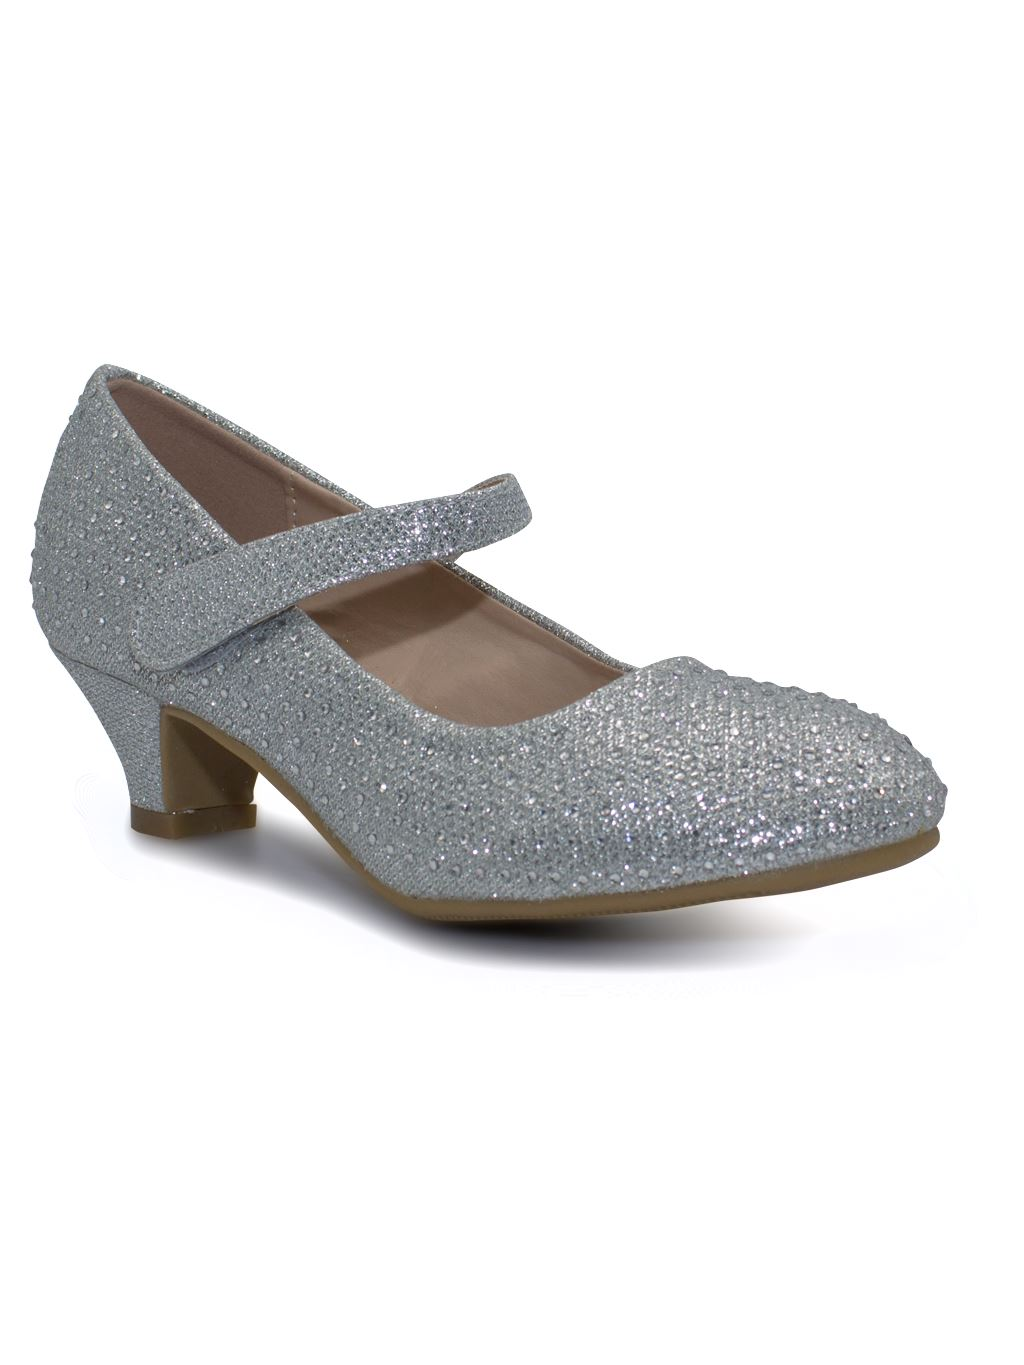 Girls-Party-Bridesmaid-Glitter-Diamante-Wedding-Block-Low-Heel-Shoes miniatura 10